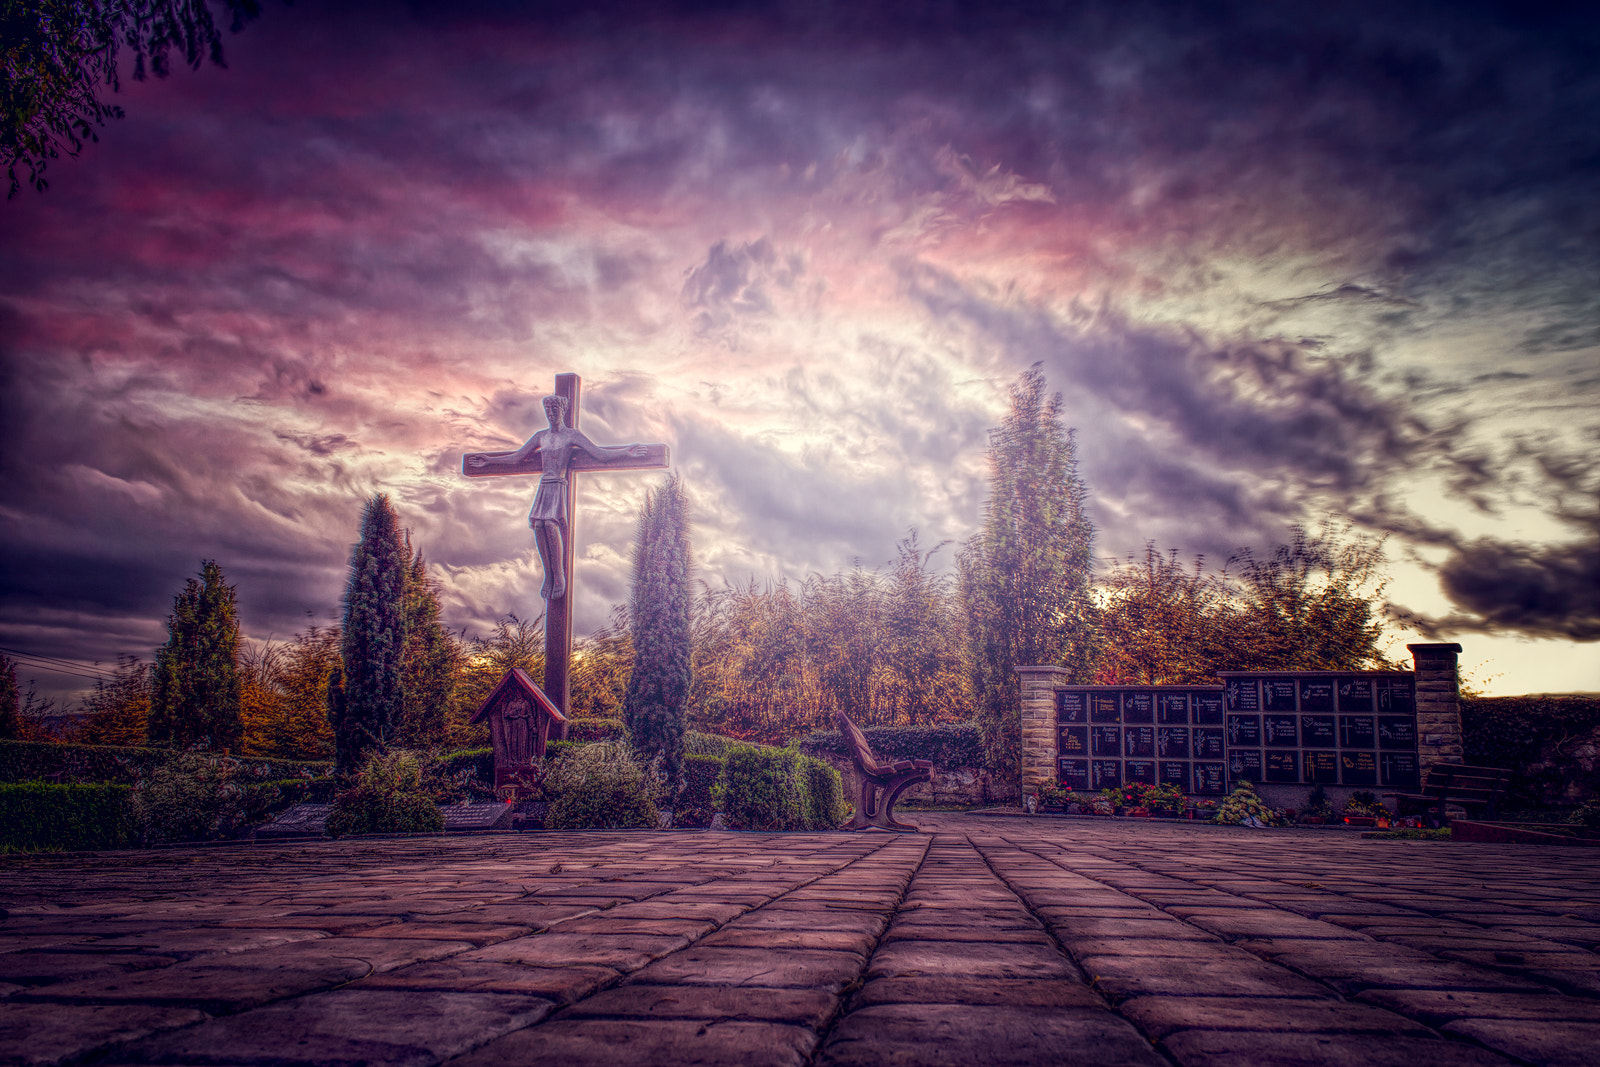 Photograph Final resting place by Colin Saks on 500px